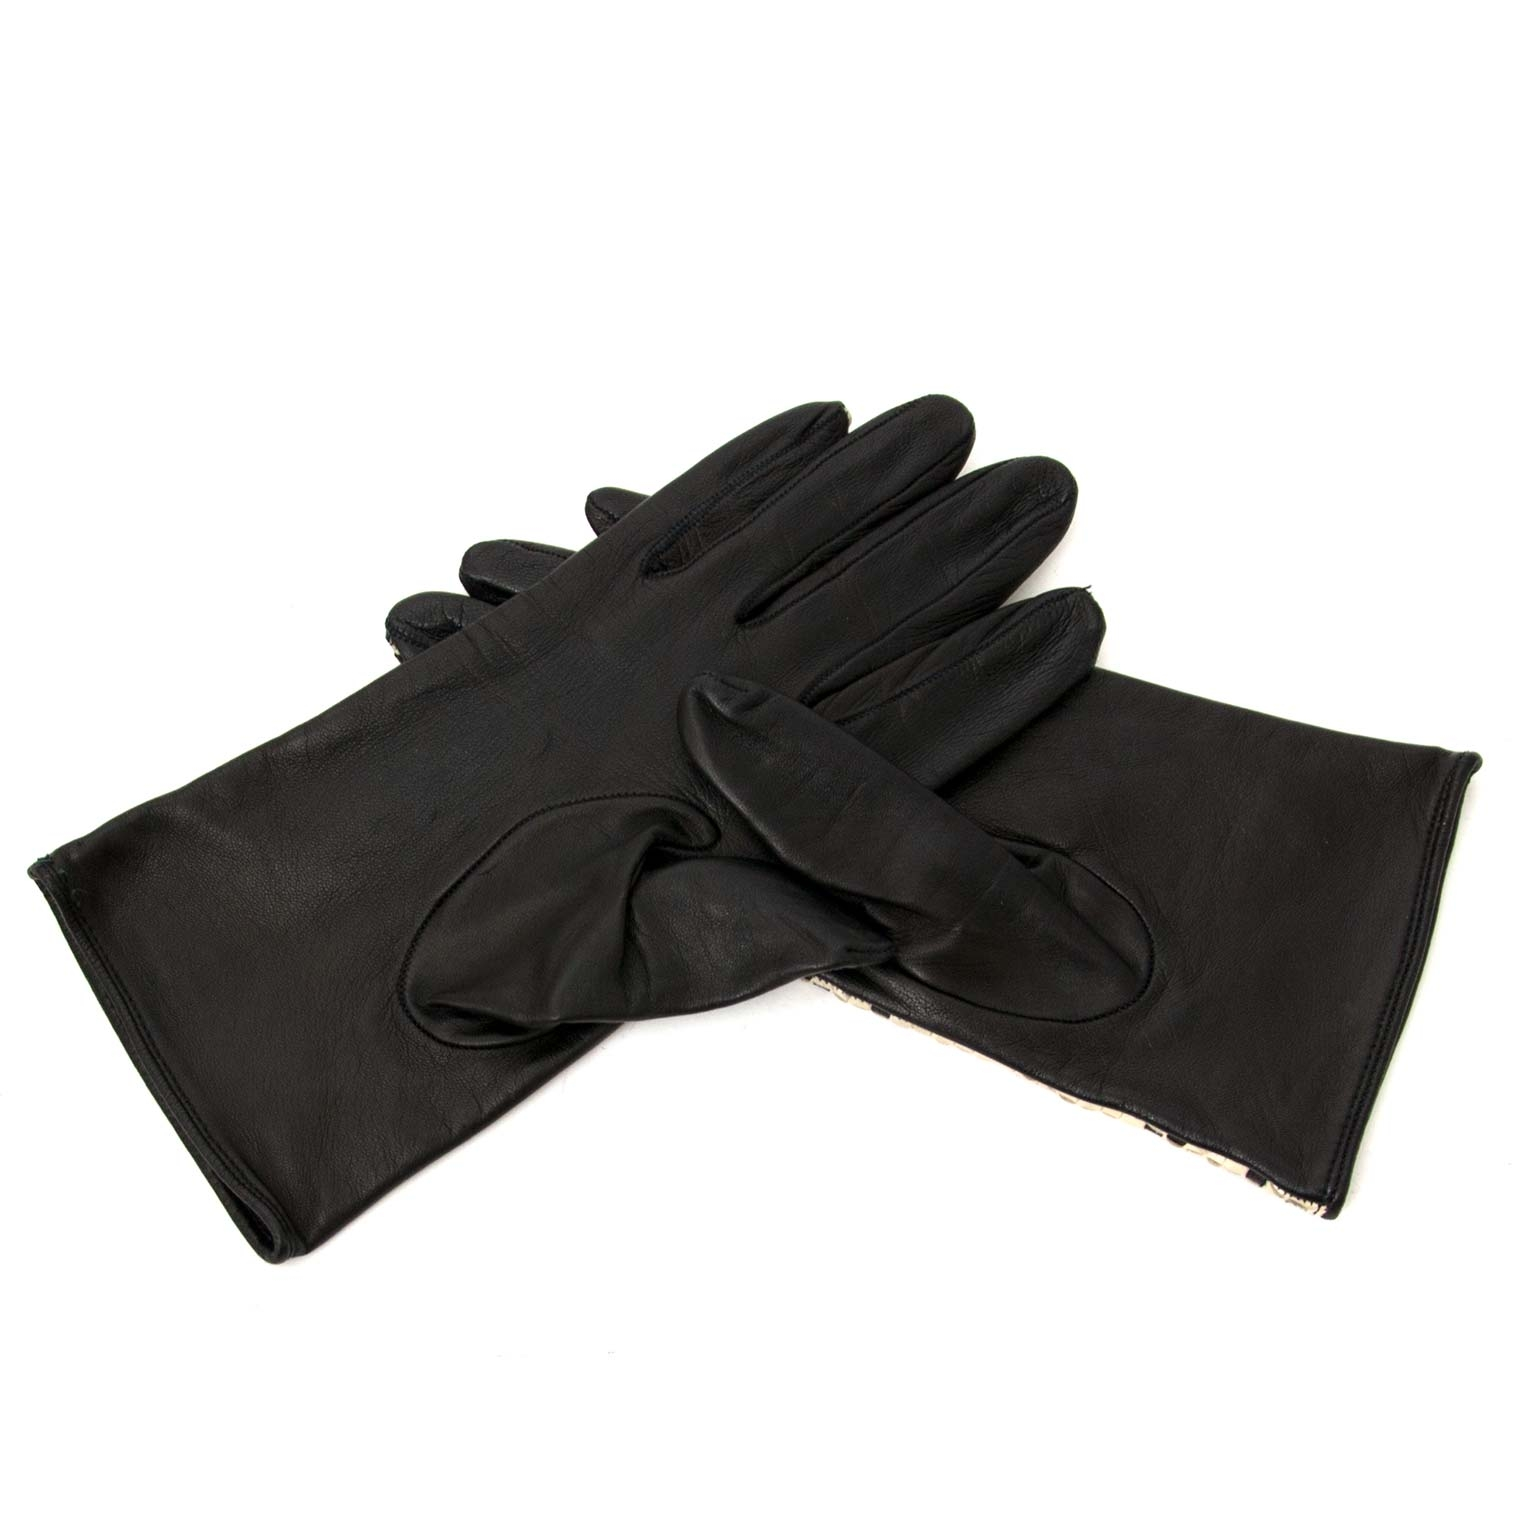 shop safe and secure online at labellov.com Burberry Woven Gloves